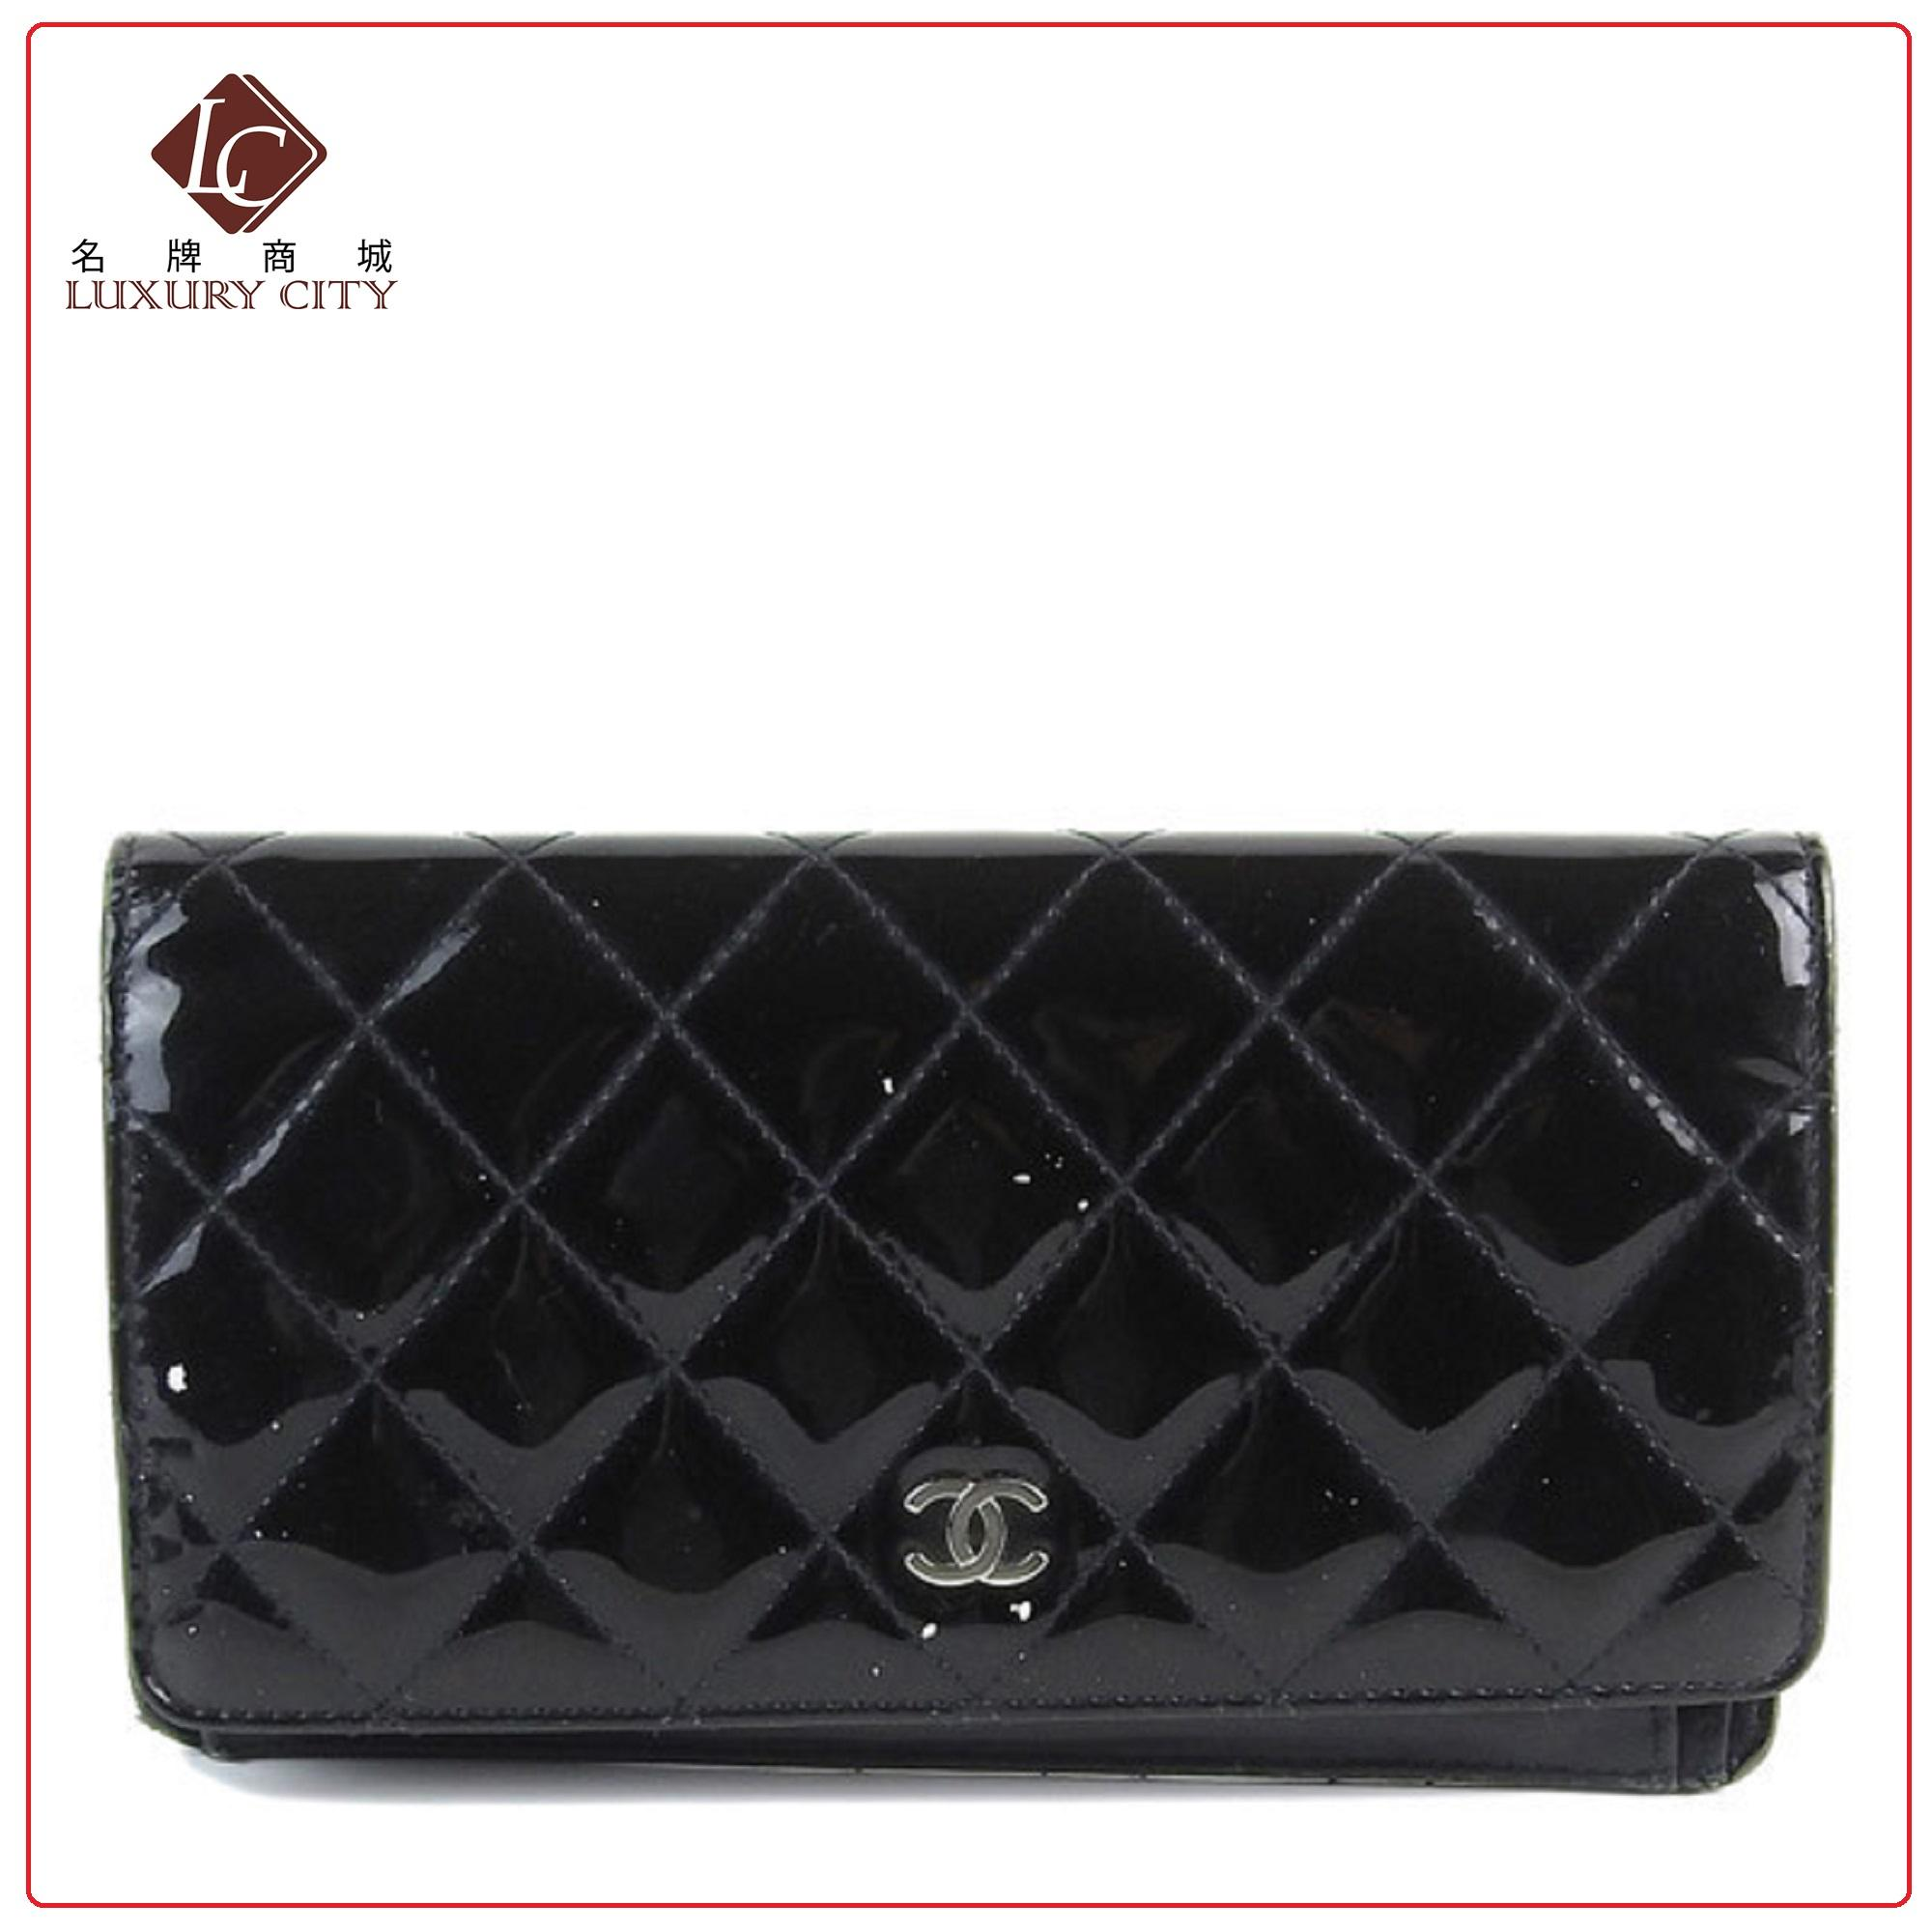 314d2e7a9baa PRELOVED AUTHENTIC CHANEL BLACK PAINT LEATHER LONG WALLET